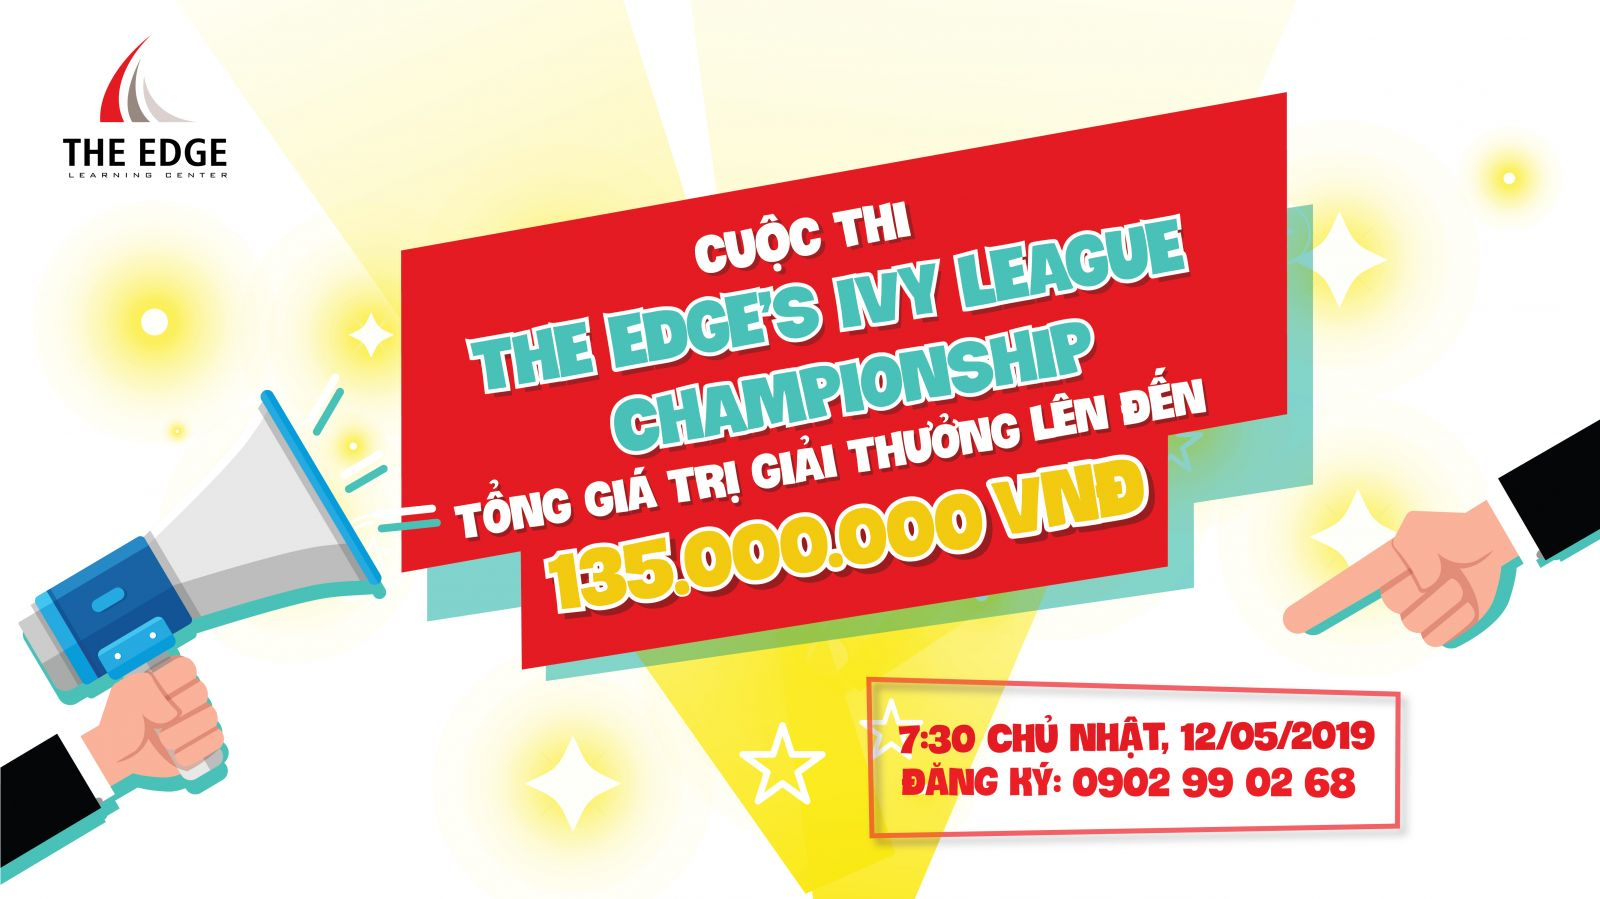 CUỘC THI THE EDGE